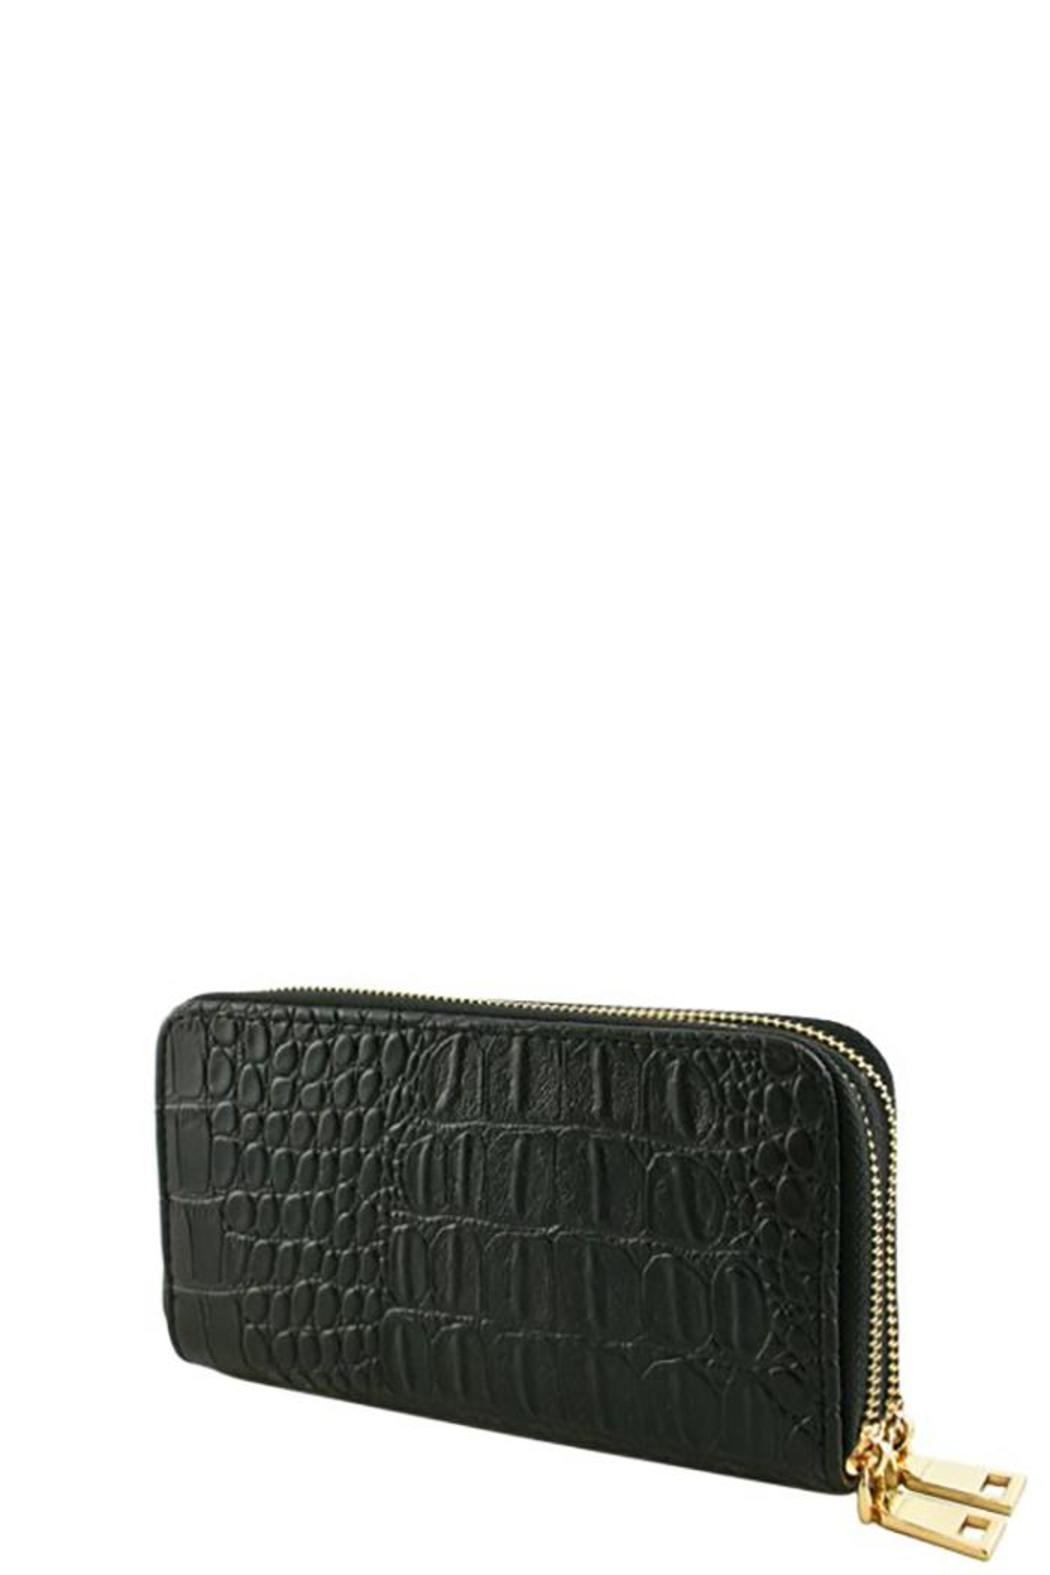 Nadya's Closet Croc Accent Wallet - Front Cropped Image